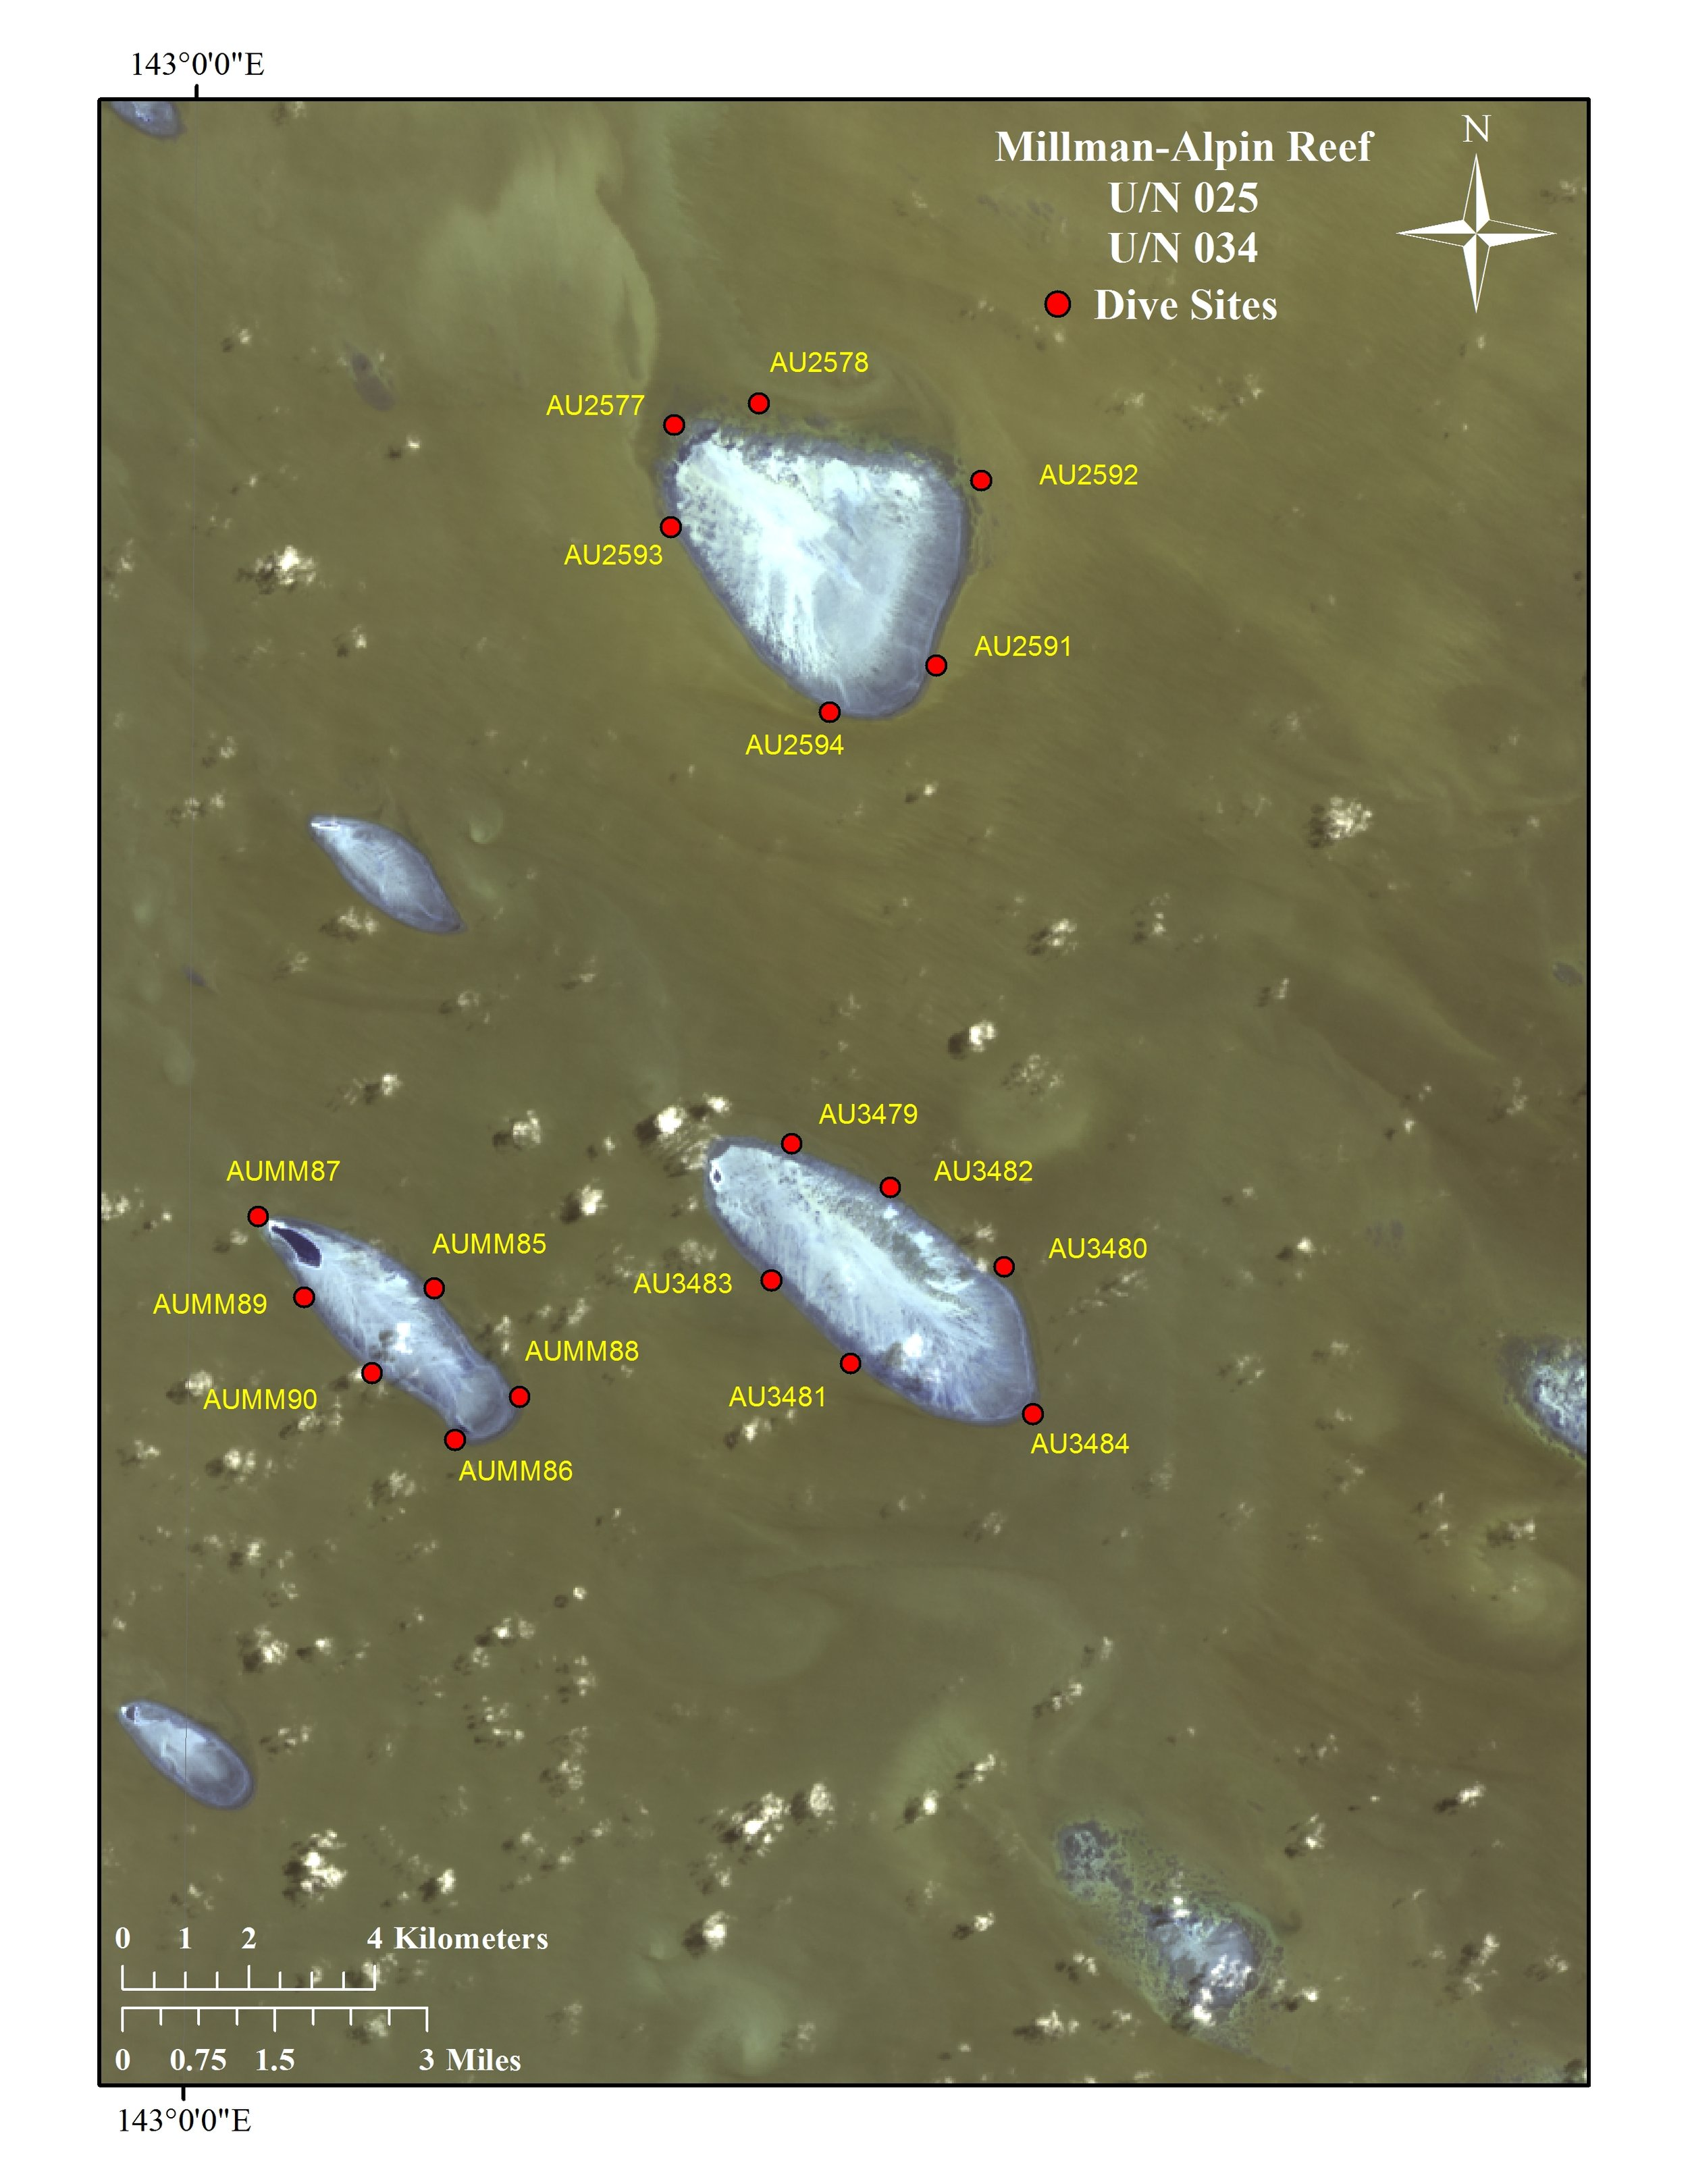 Here is a slightly zoomed in view of Milman Reef and Unnamed Reef 25.